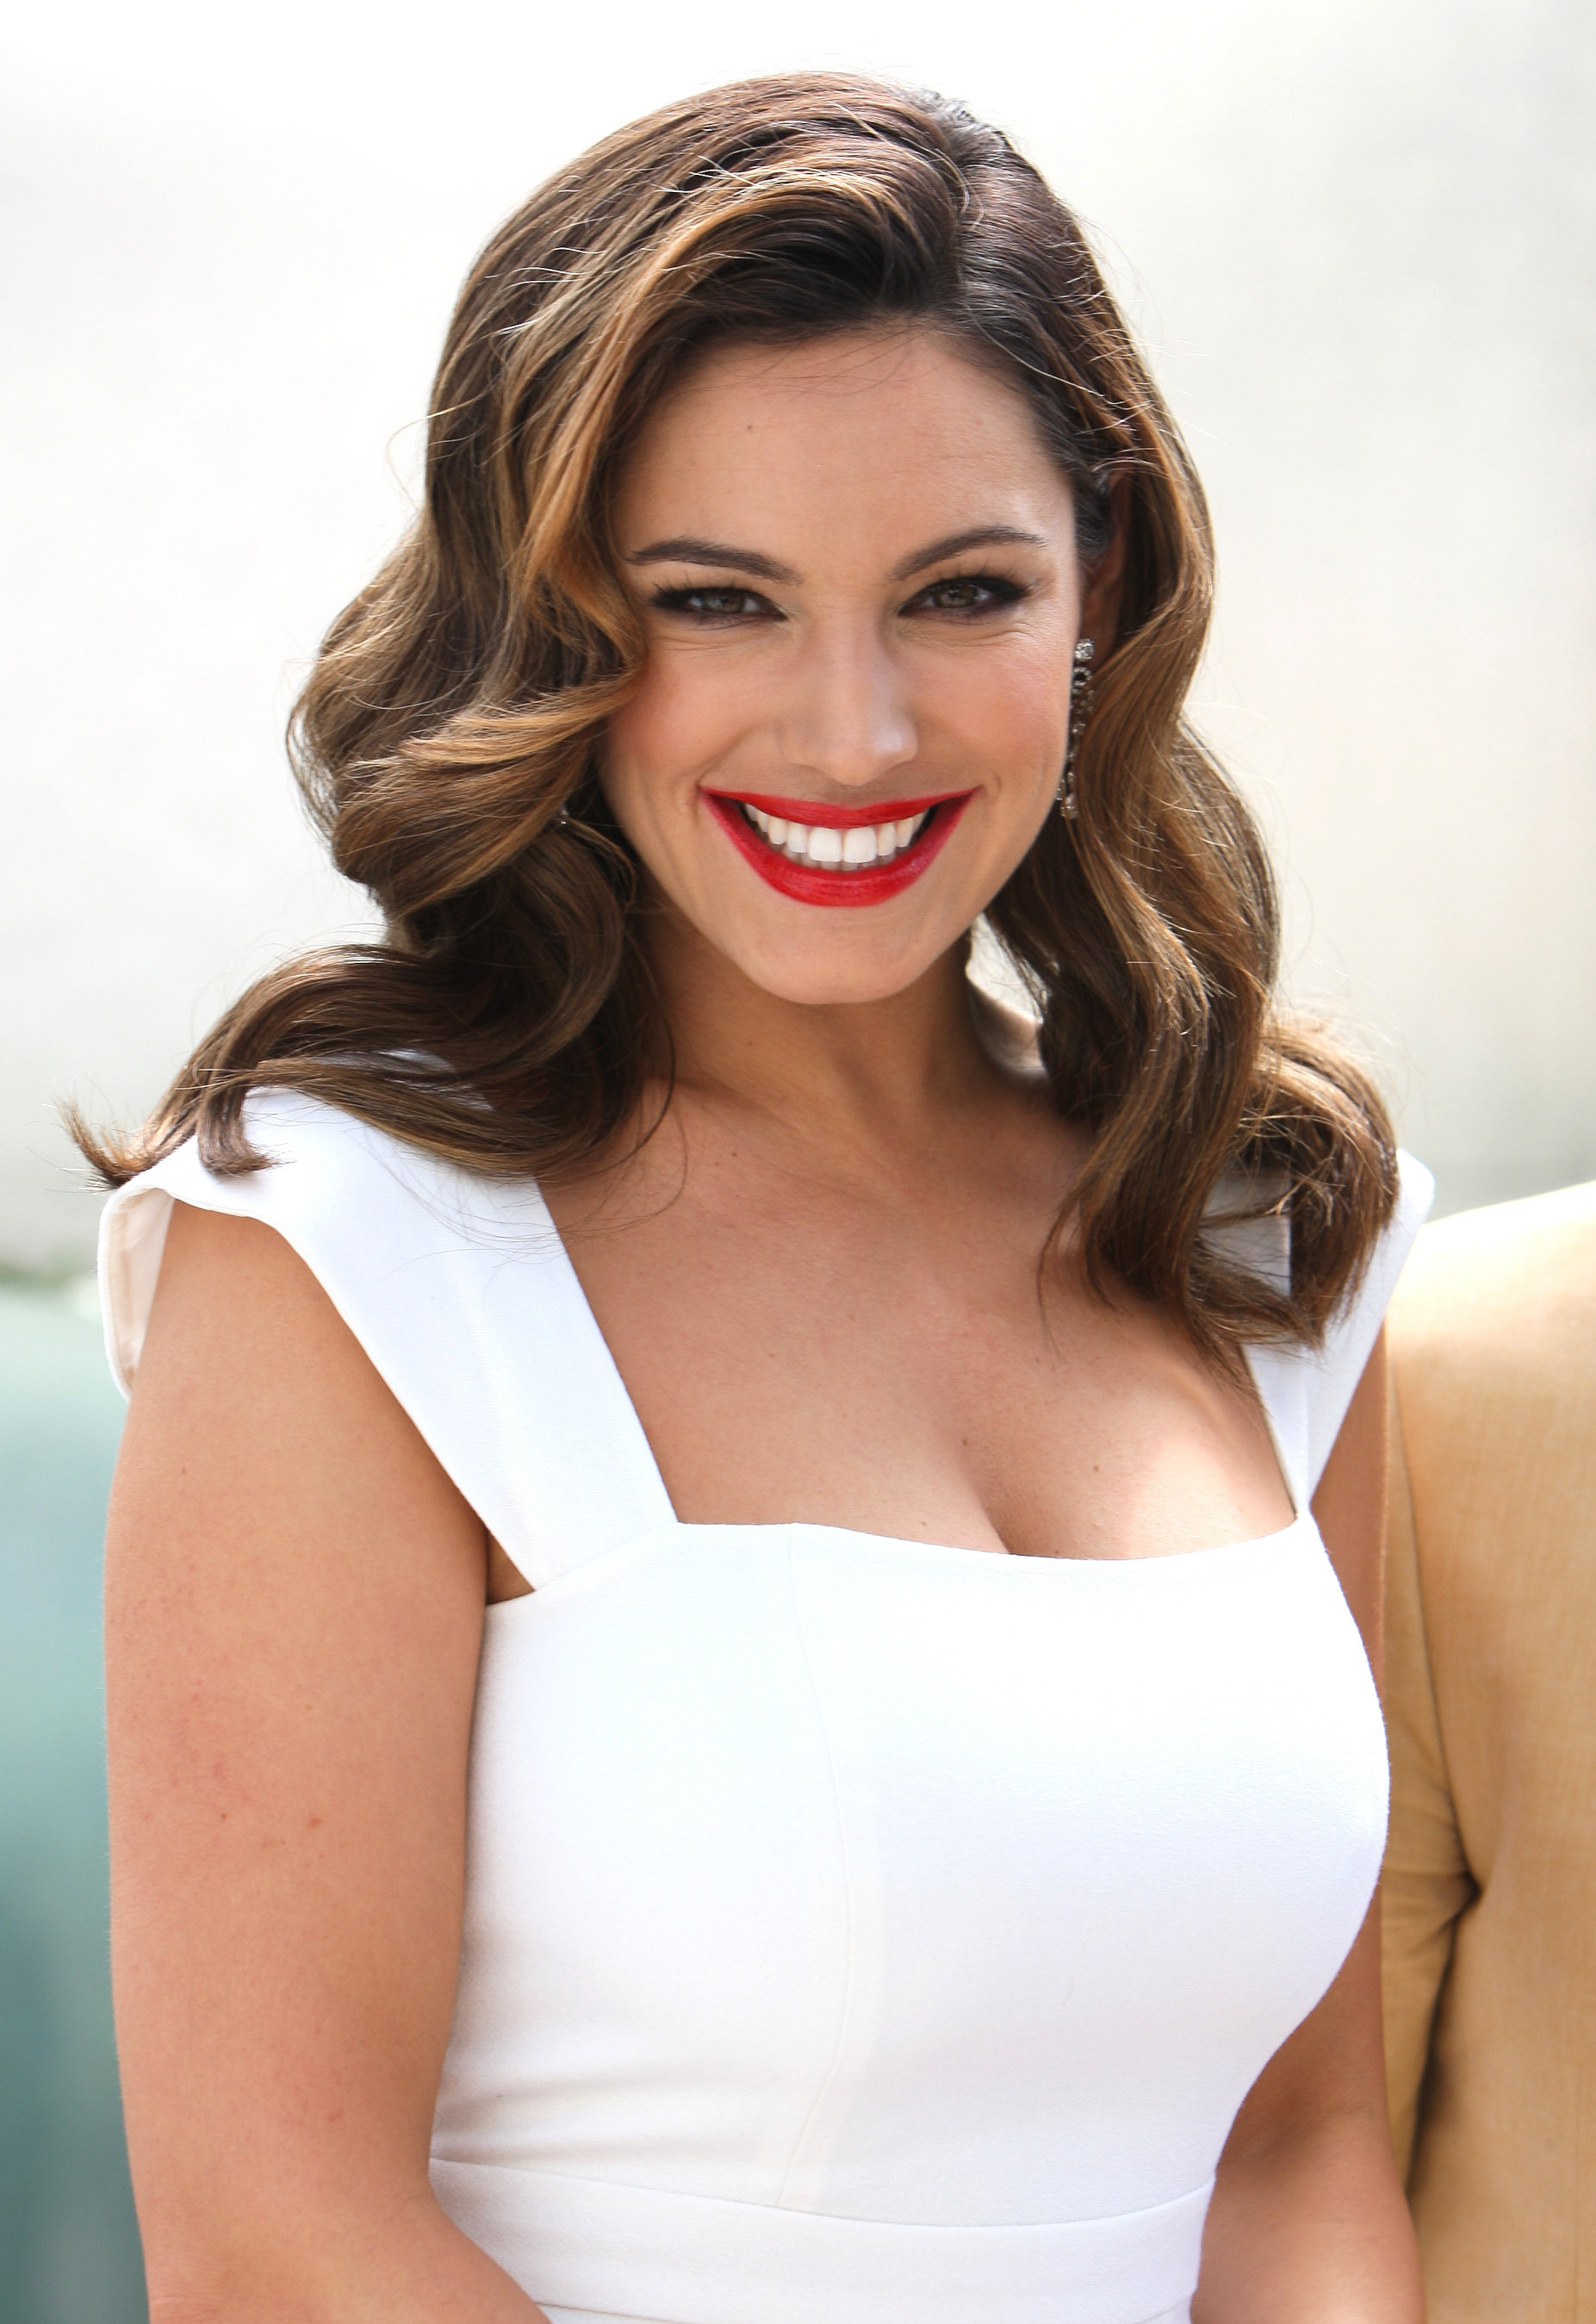 kelly-brook-photo.jpg